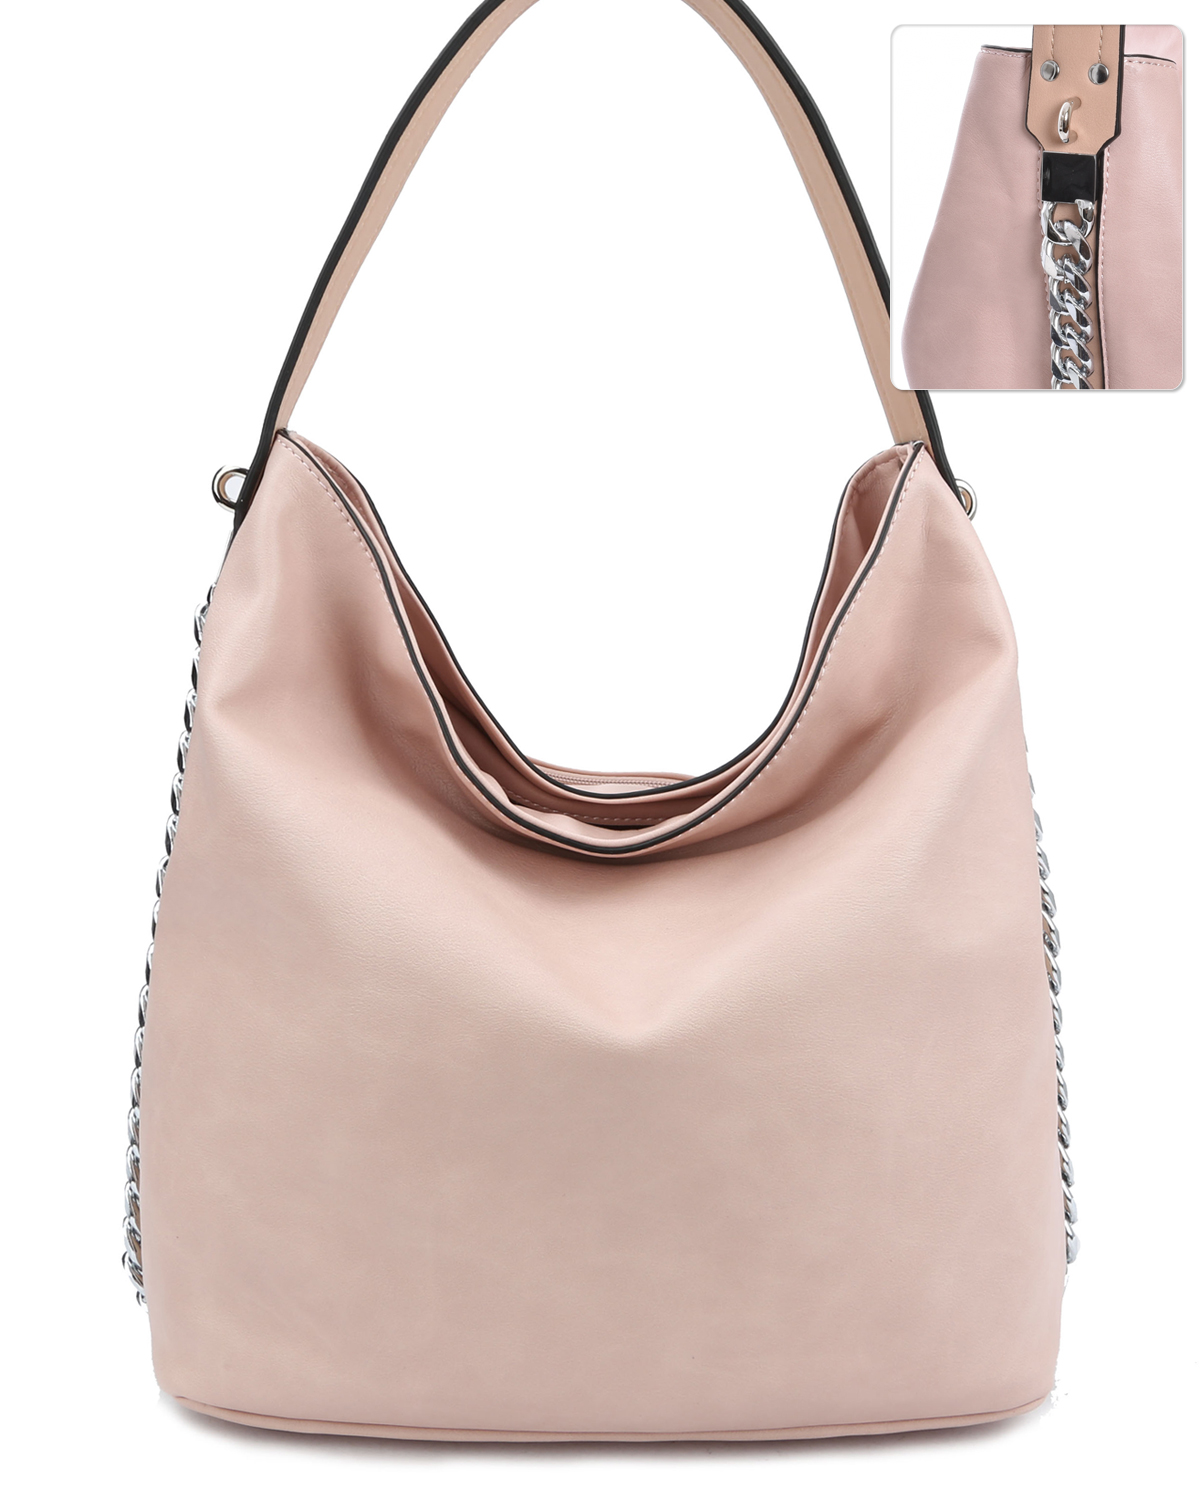 LD125(BS)-S21-wholesale-handbag-fashion-leatherette-solid-color-silver-tone-metal-chain-plain-distressed-faux(0).jpg